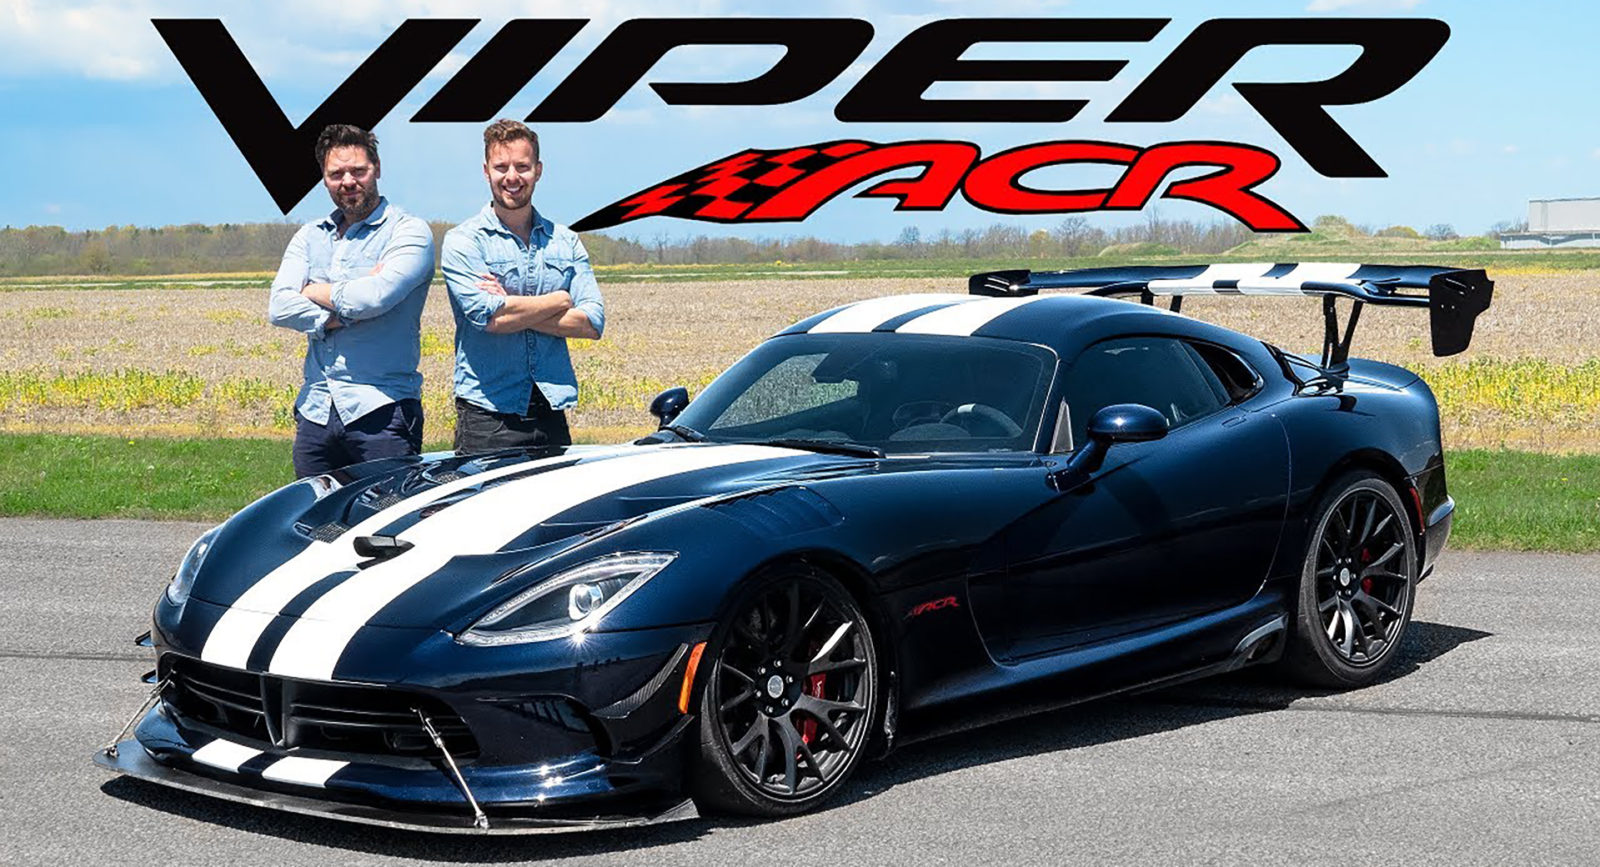 the-dodge-viper-acr-is-still-a-formidable-weapon-on-the-track